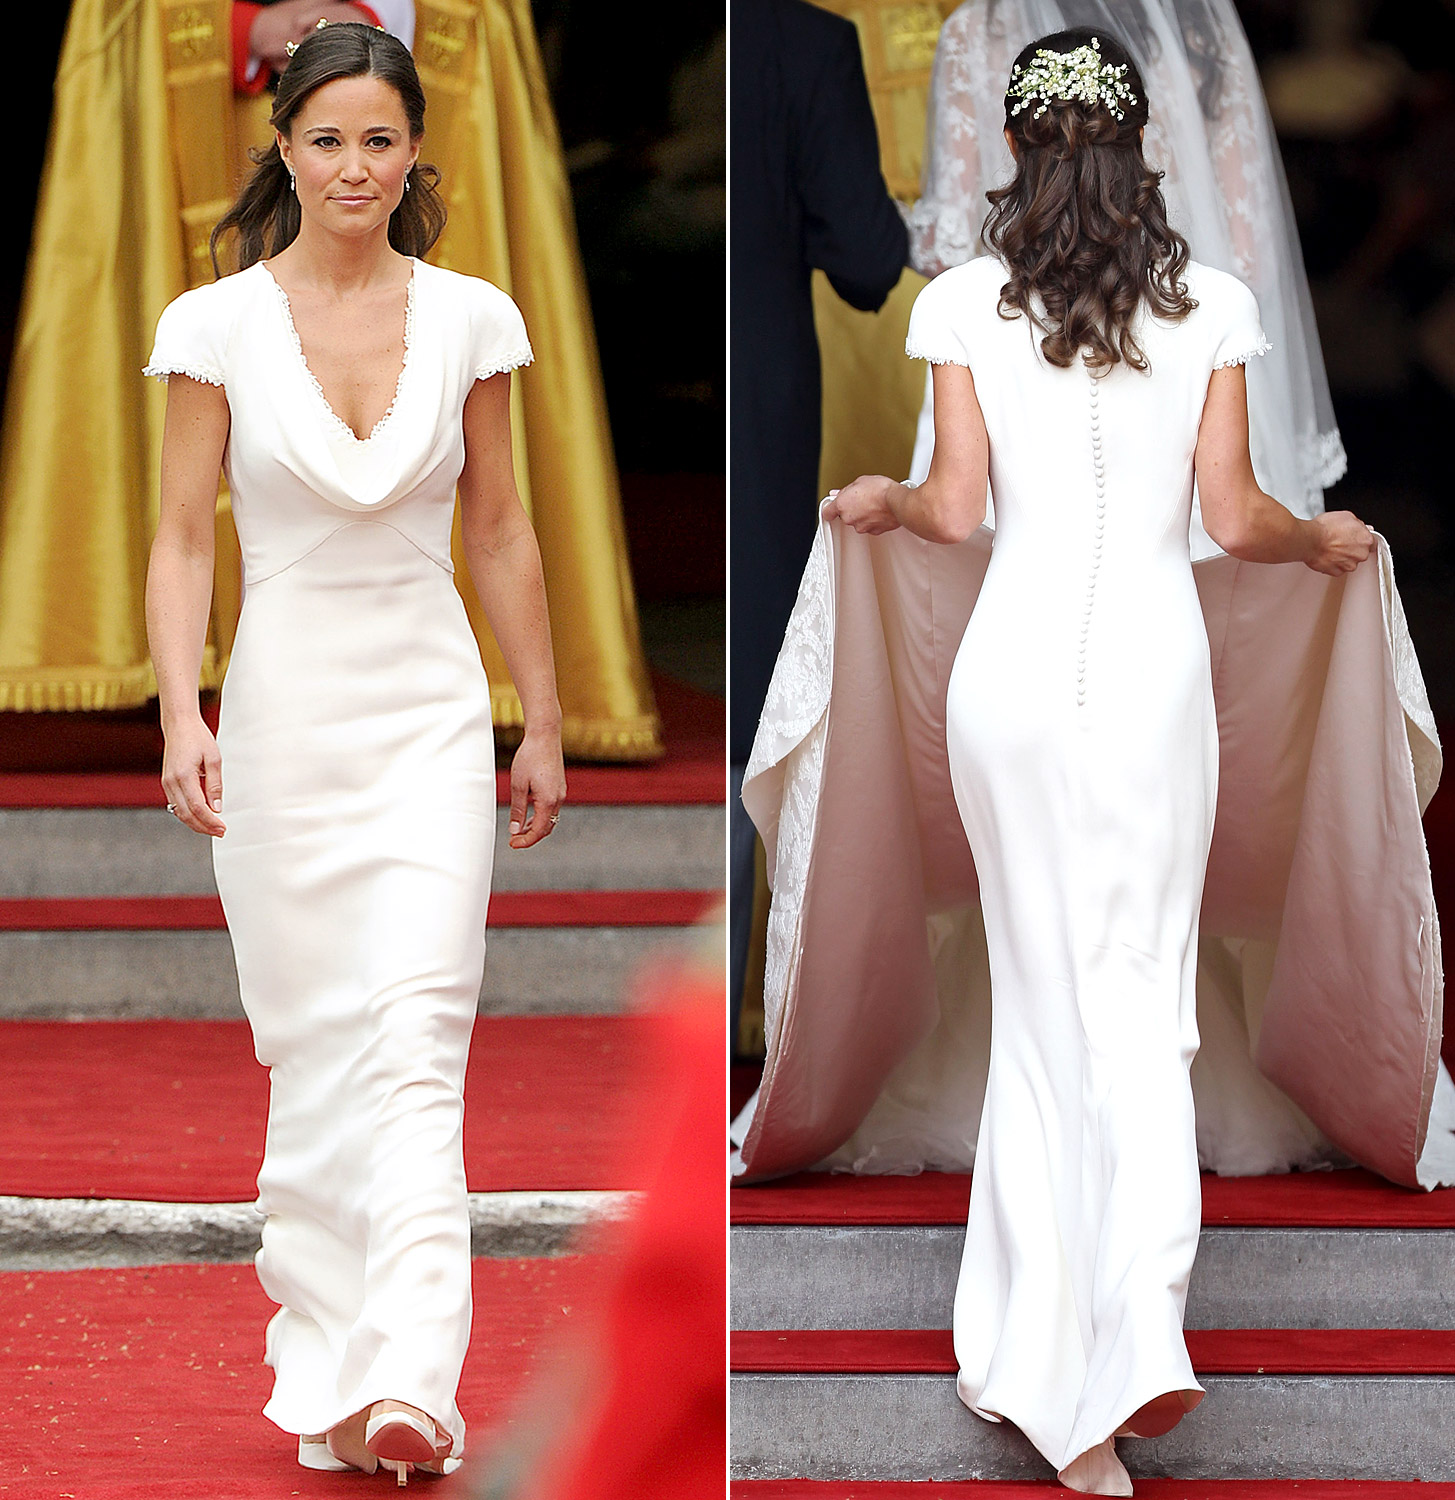 Pippa middleton s bum visits royal baby for Wedding dress like pippa middleton